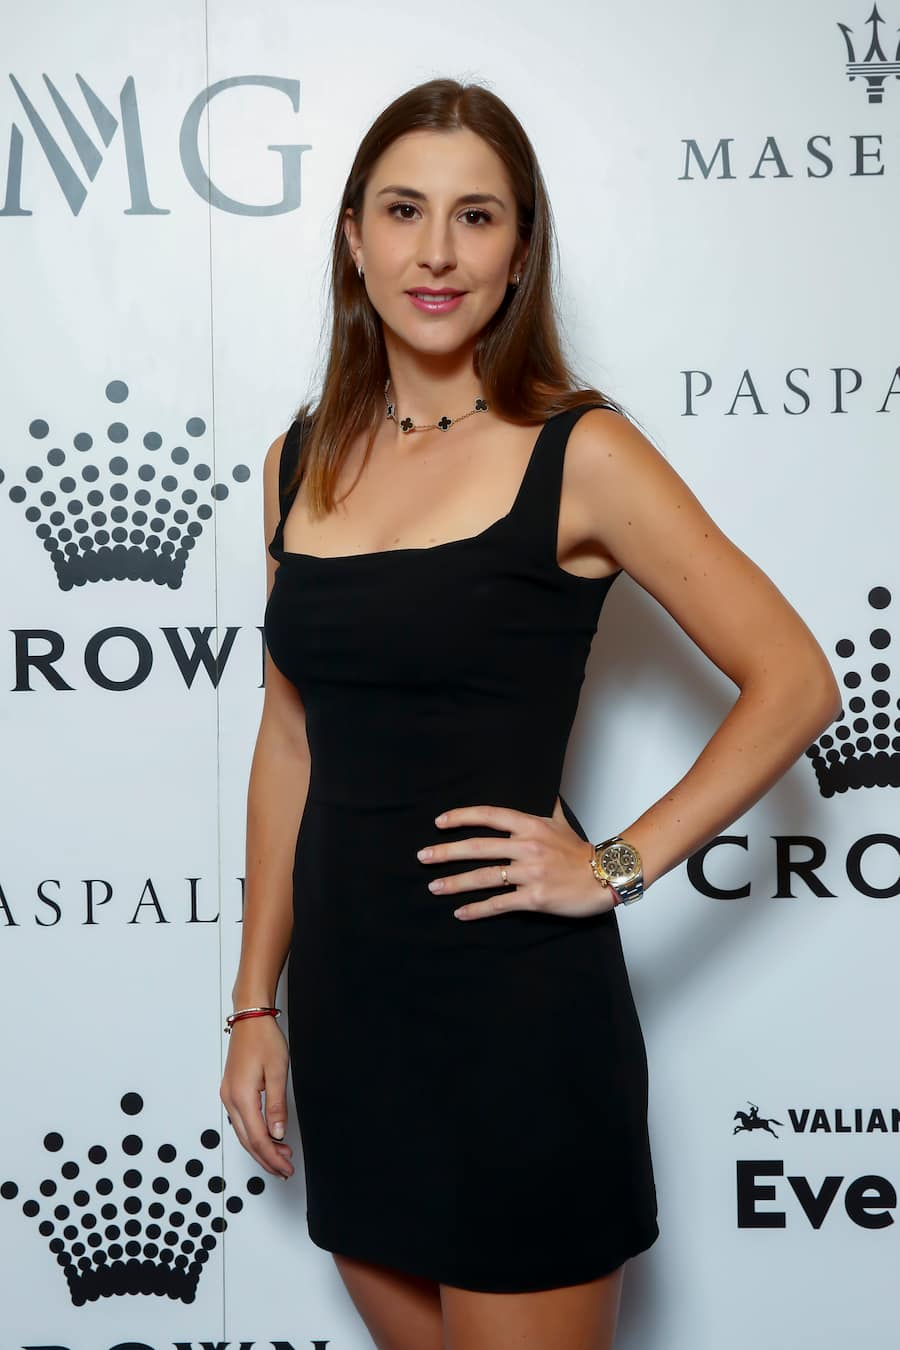 Belinda Bencic attends the Crown IMG Tennis Party on January 19, 2020 in Melbourne, Australia. (Photo by Sam Tabone/Getty Images)